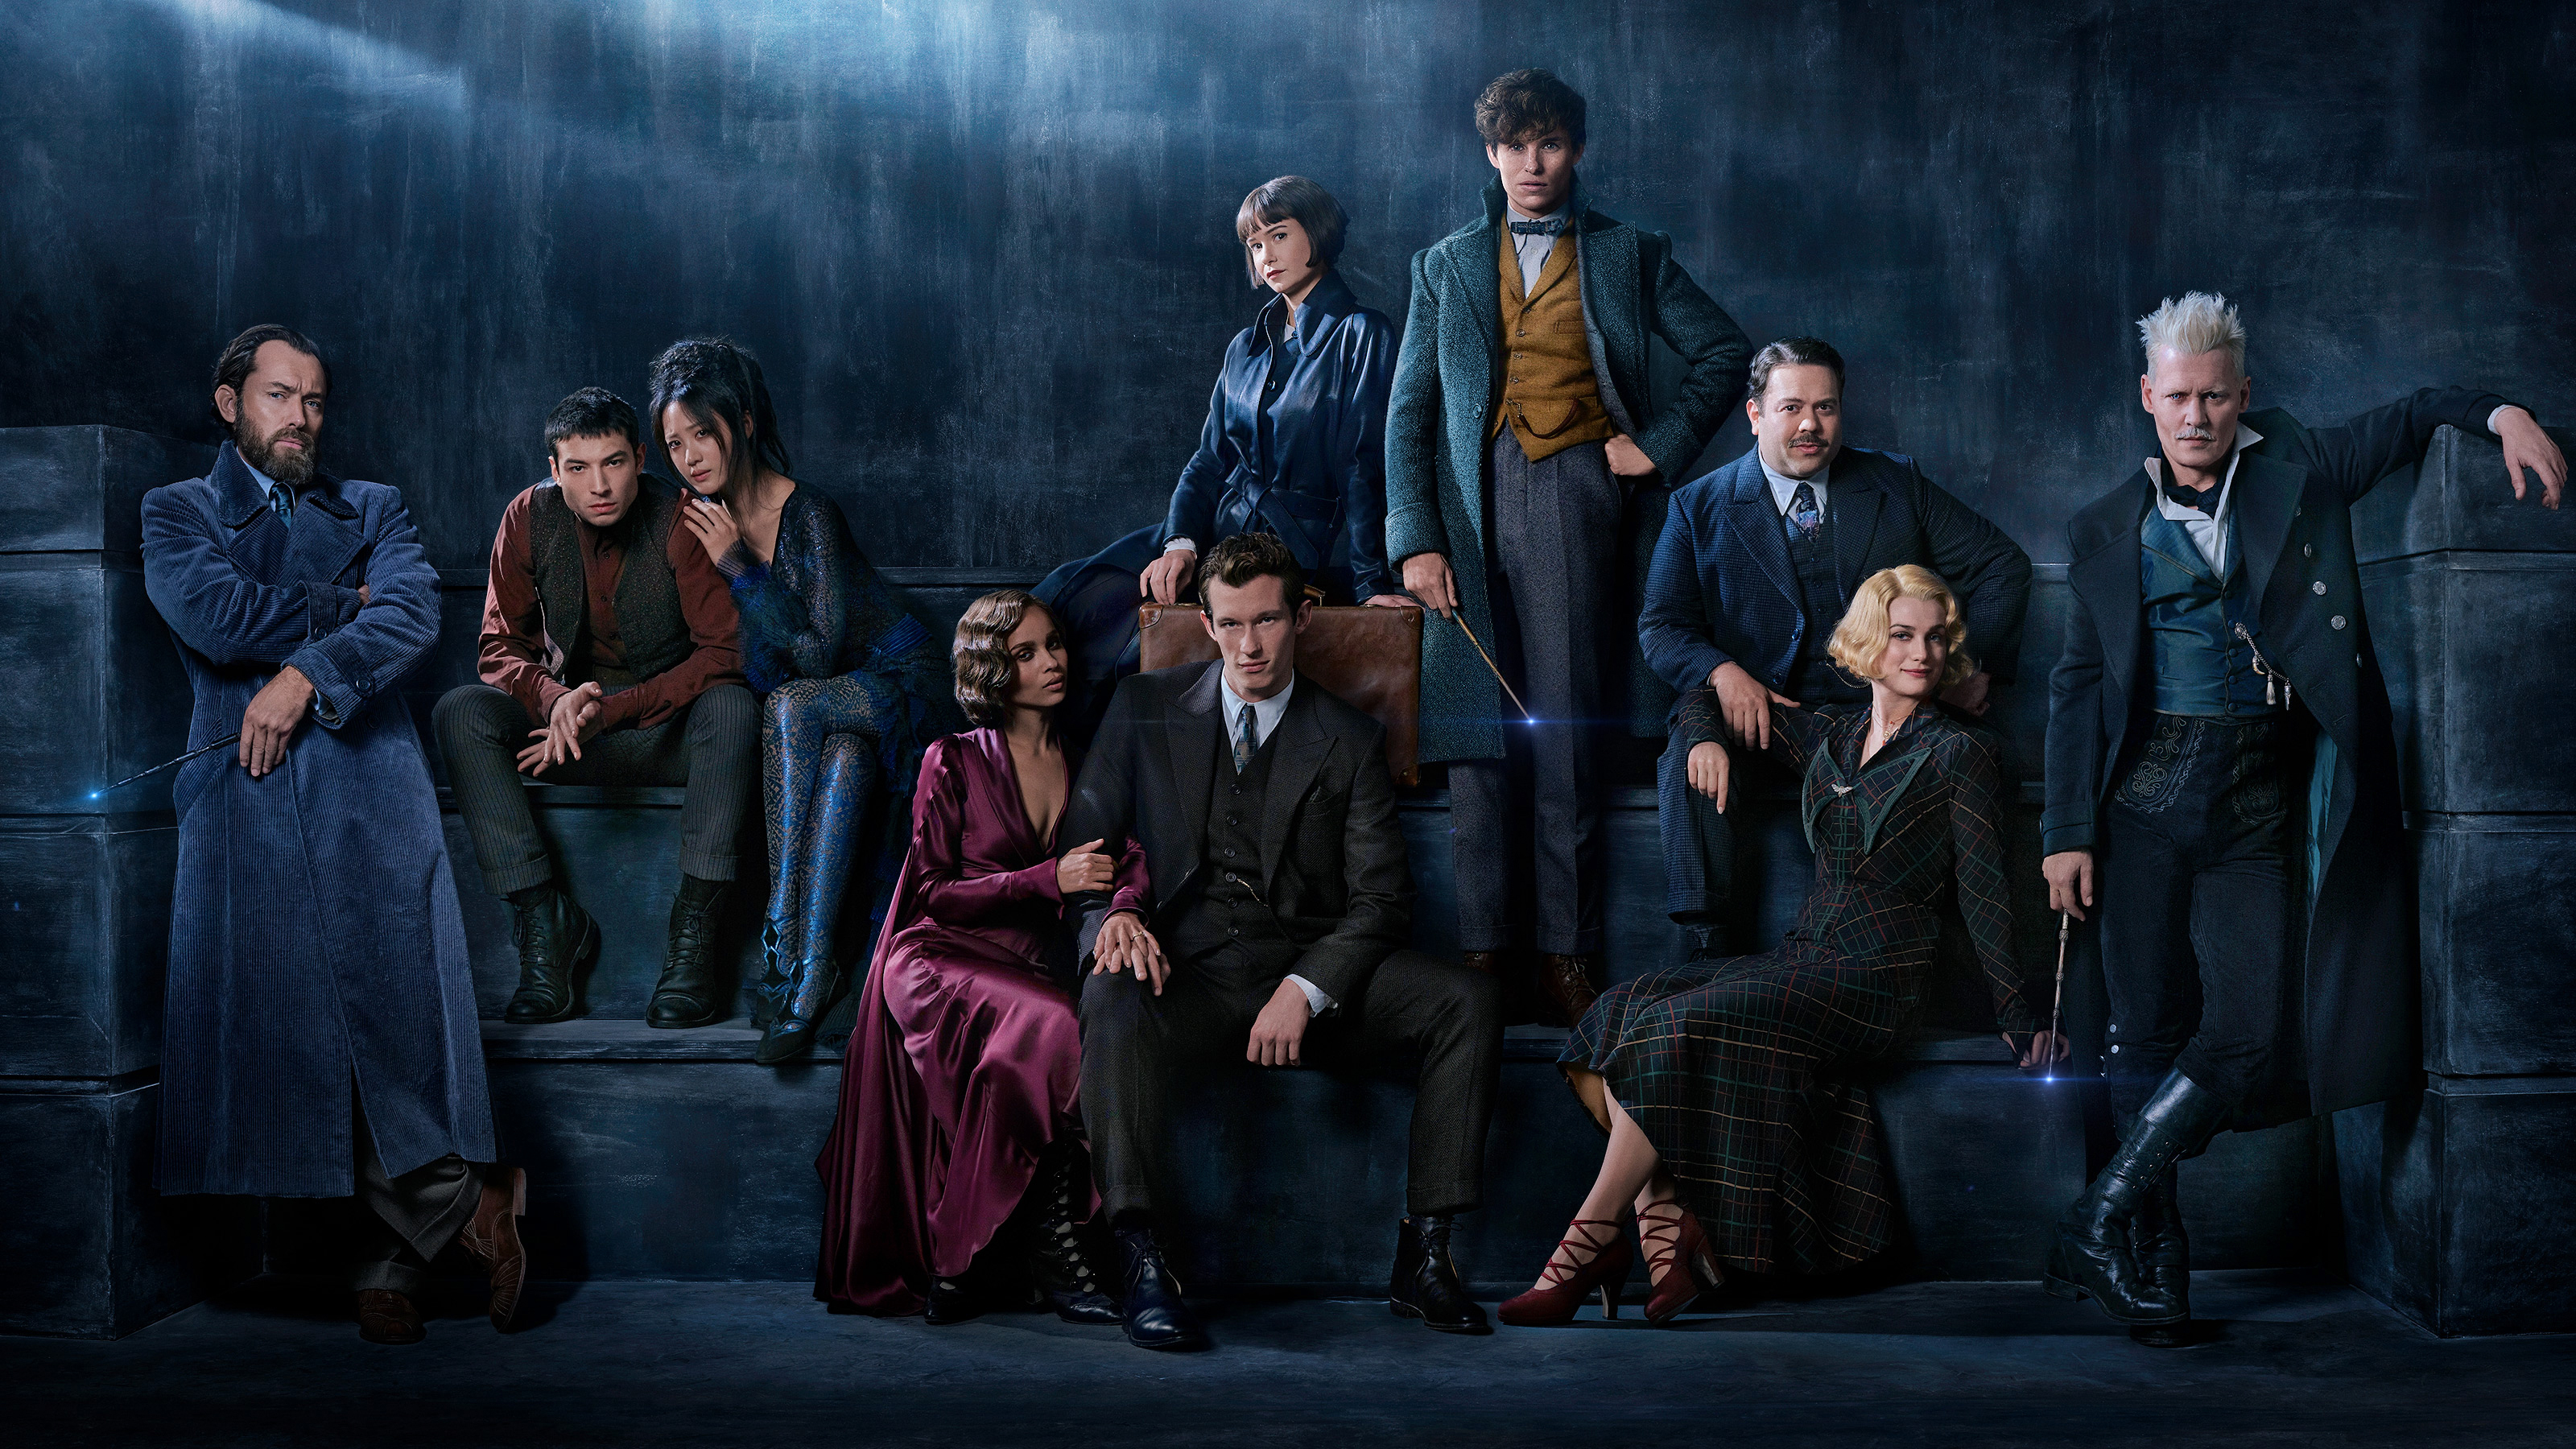 fantastic beasts the crimes of grindelwald 2018 cast, hd movies, 4k